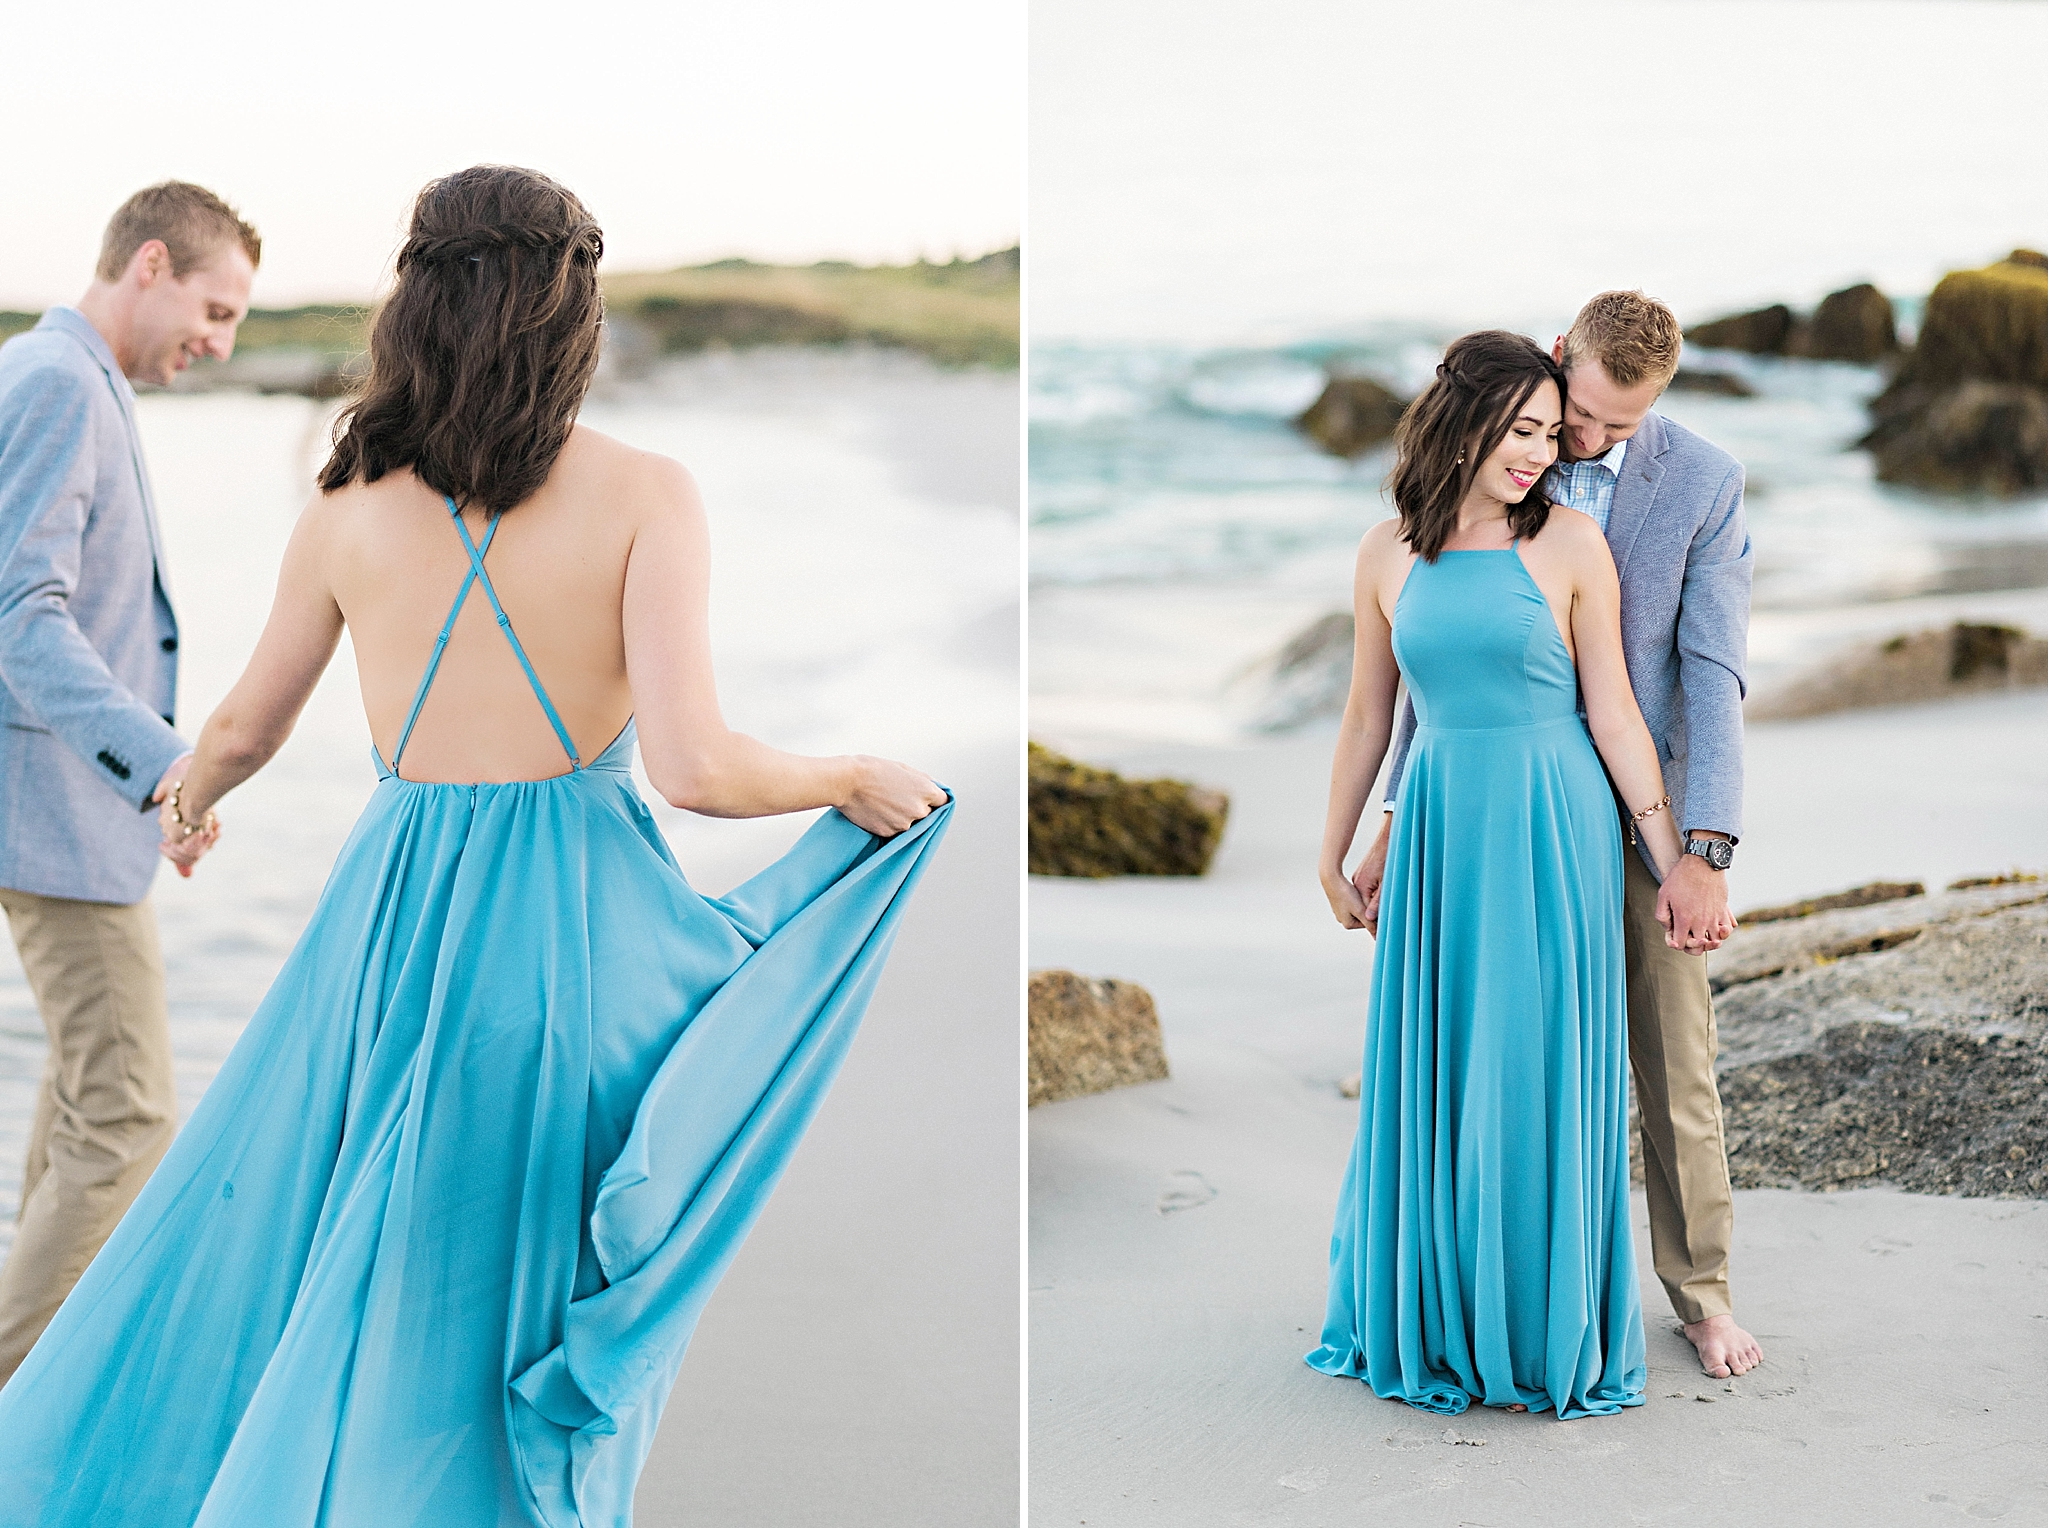 Romantic Seaside Beach Engagement Shoot in Lulu's long flowy maxy dress_038.jpg